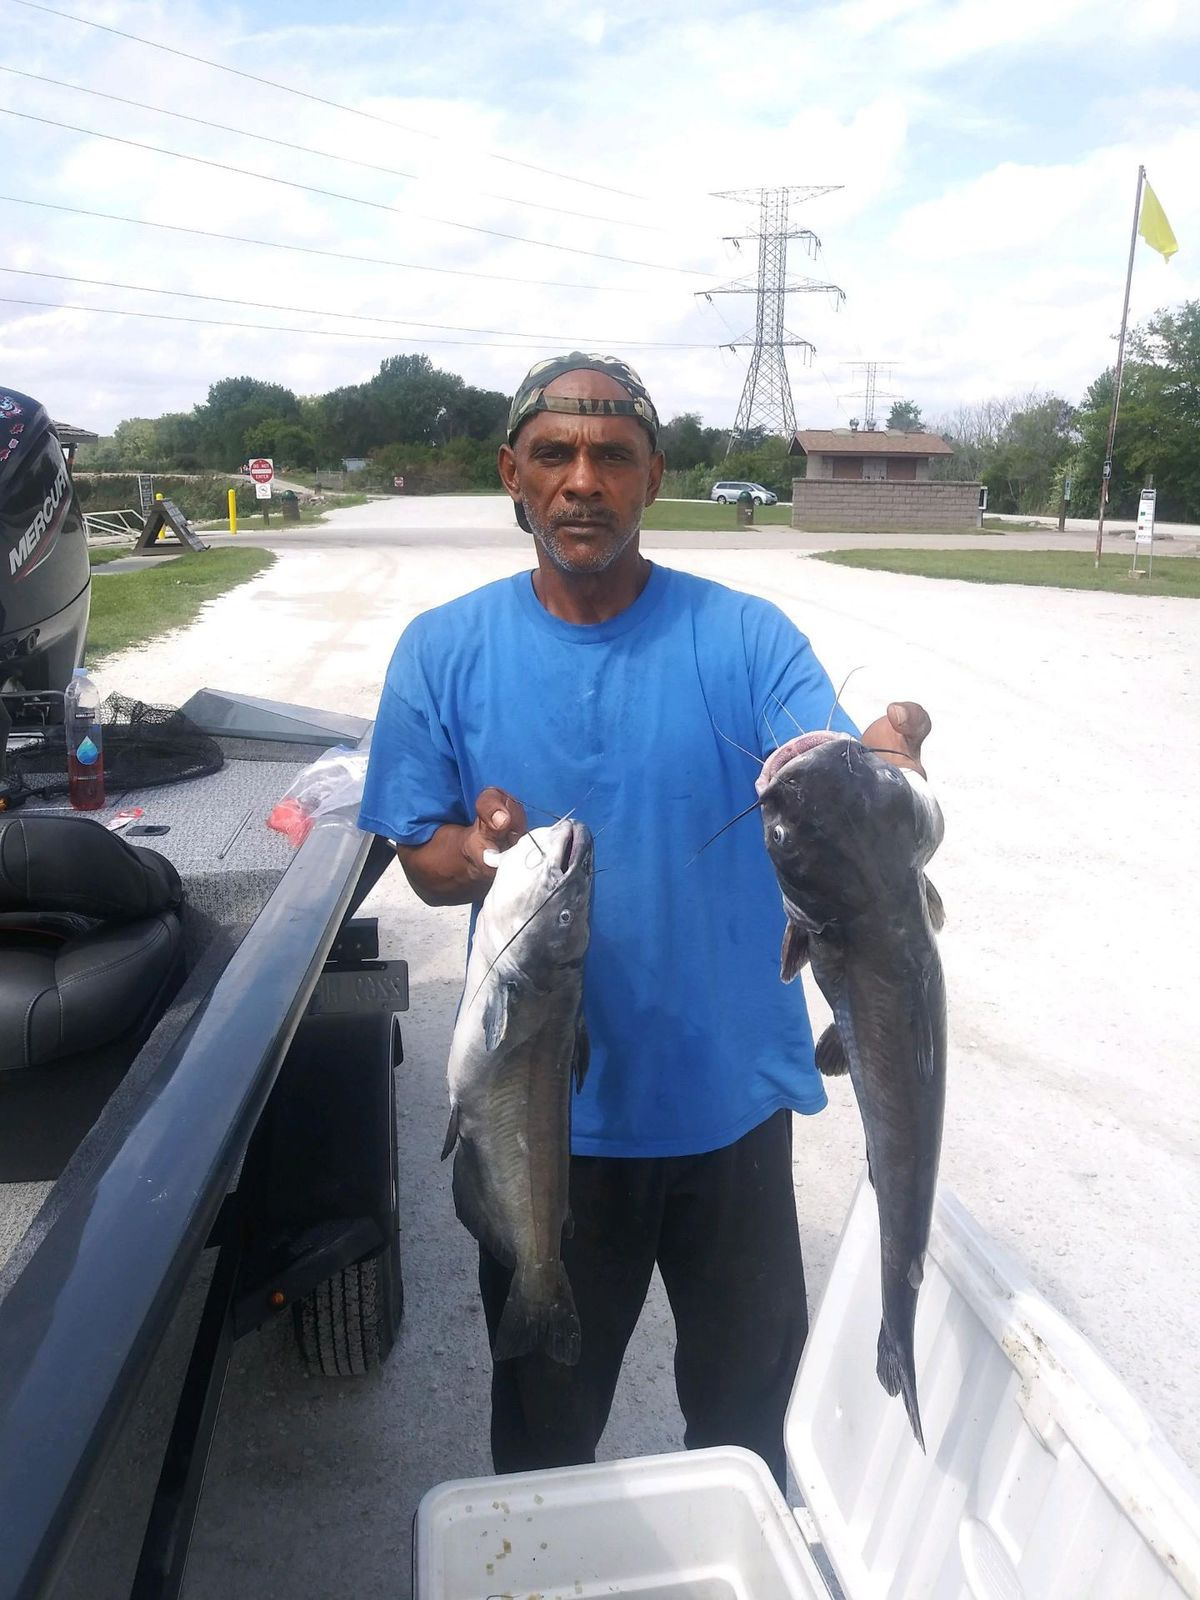 Dwayne Armstrong had a good day for big catfish and eater-sized ones at Braidwood Lake. Provided by BoRabb Williams